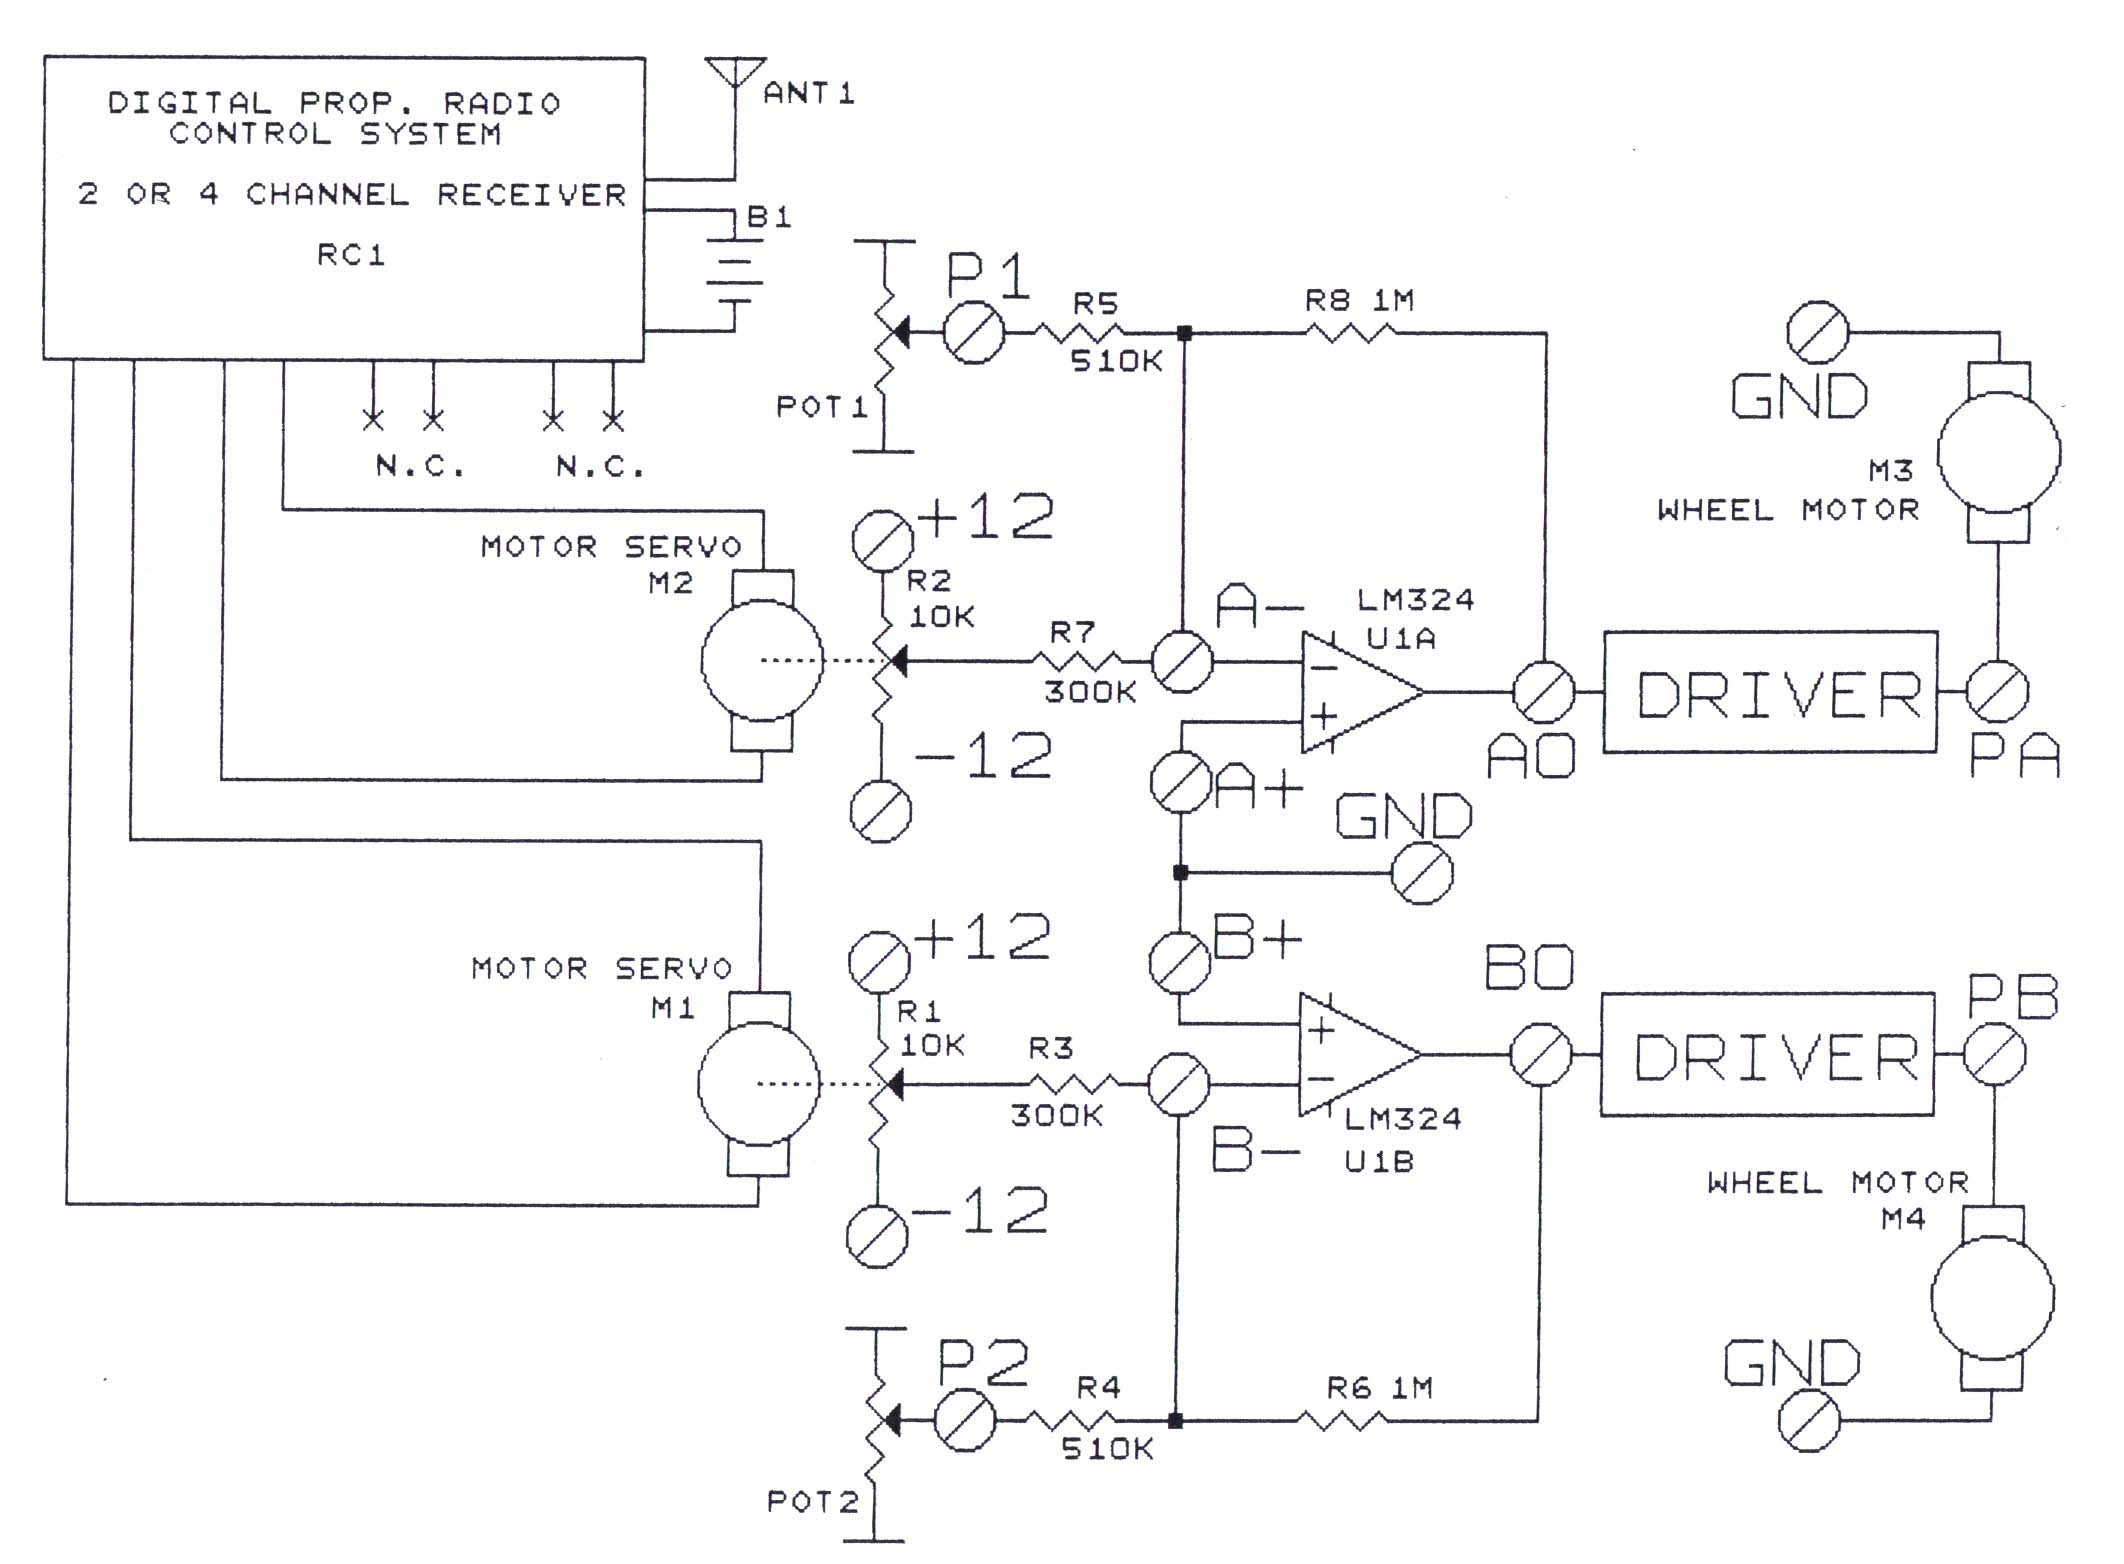 medium resolution of  instructional diagram for radio remote control using the power amplifier board